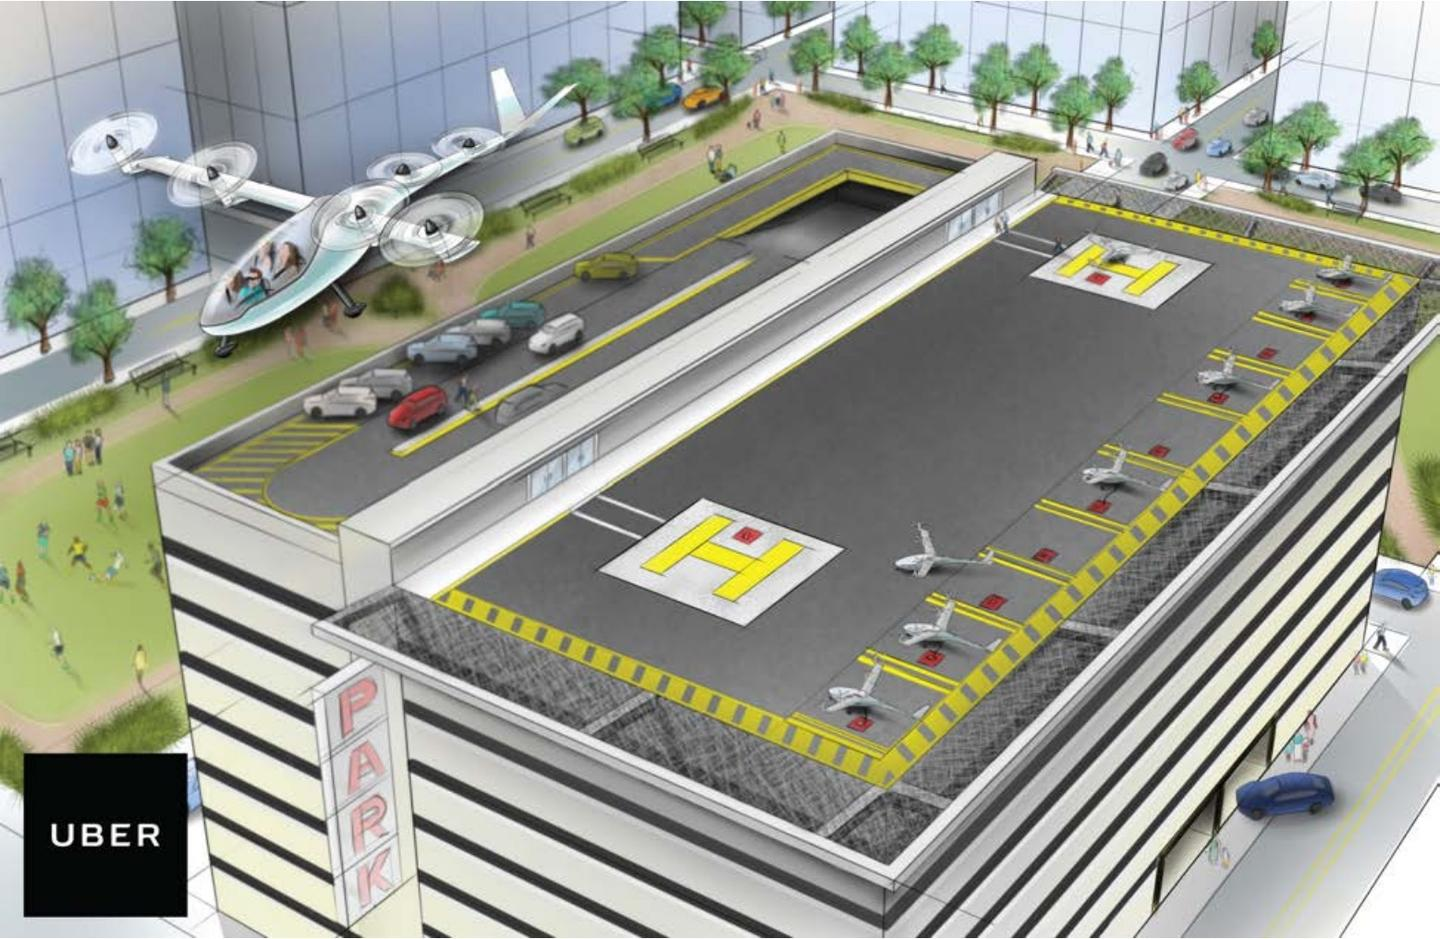 The coming wave of urban air mobility could seeair taxis land on vertiports built into the top of urban parking garages